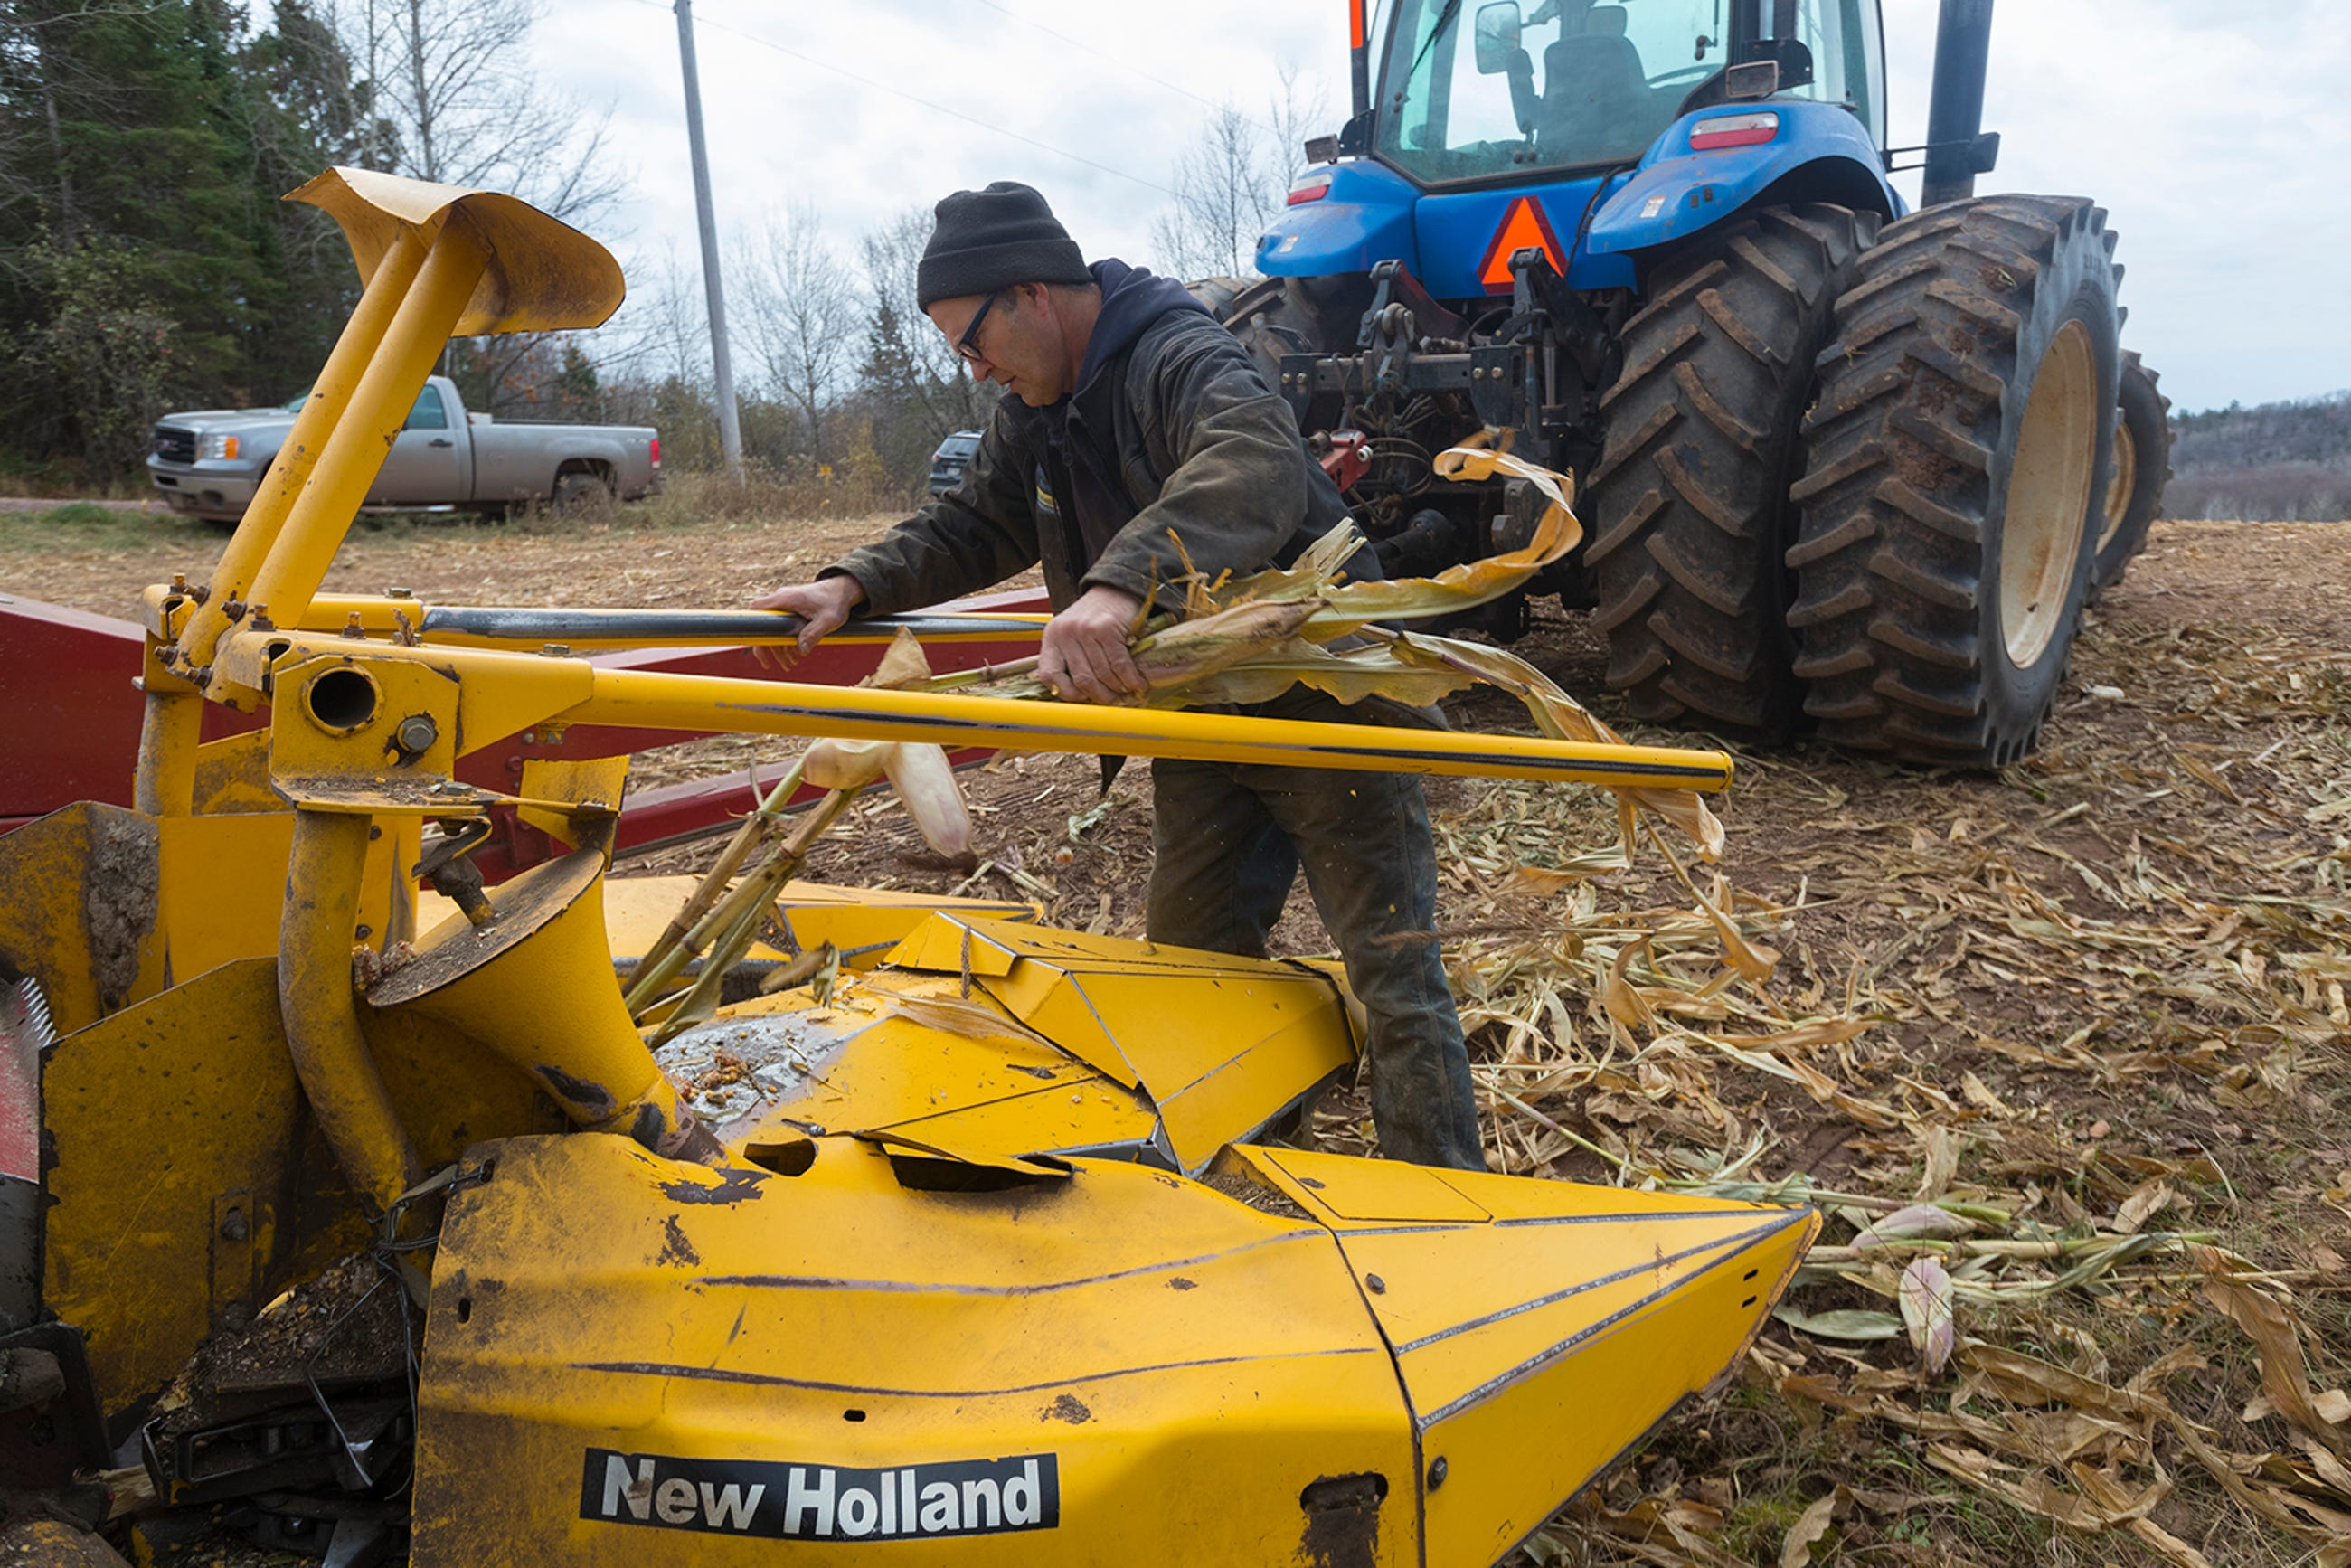 Mike Thewis clears corn from a harvester on his family's dairy farm near Mellen, Wis. in November 2019.